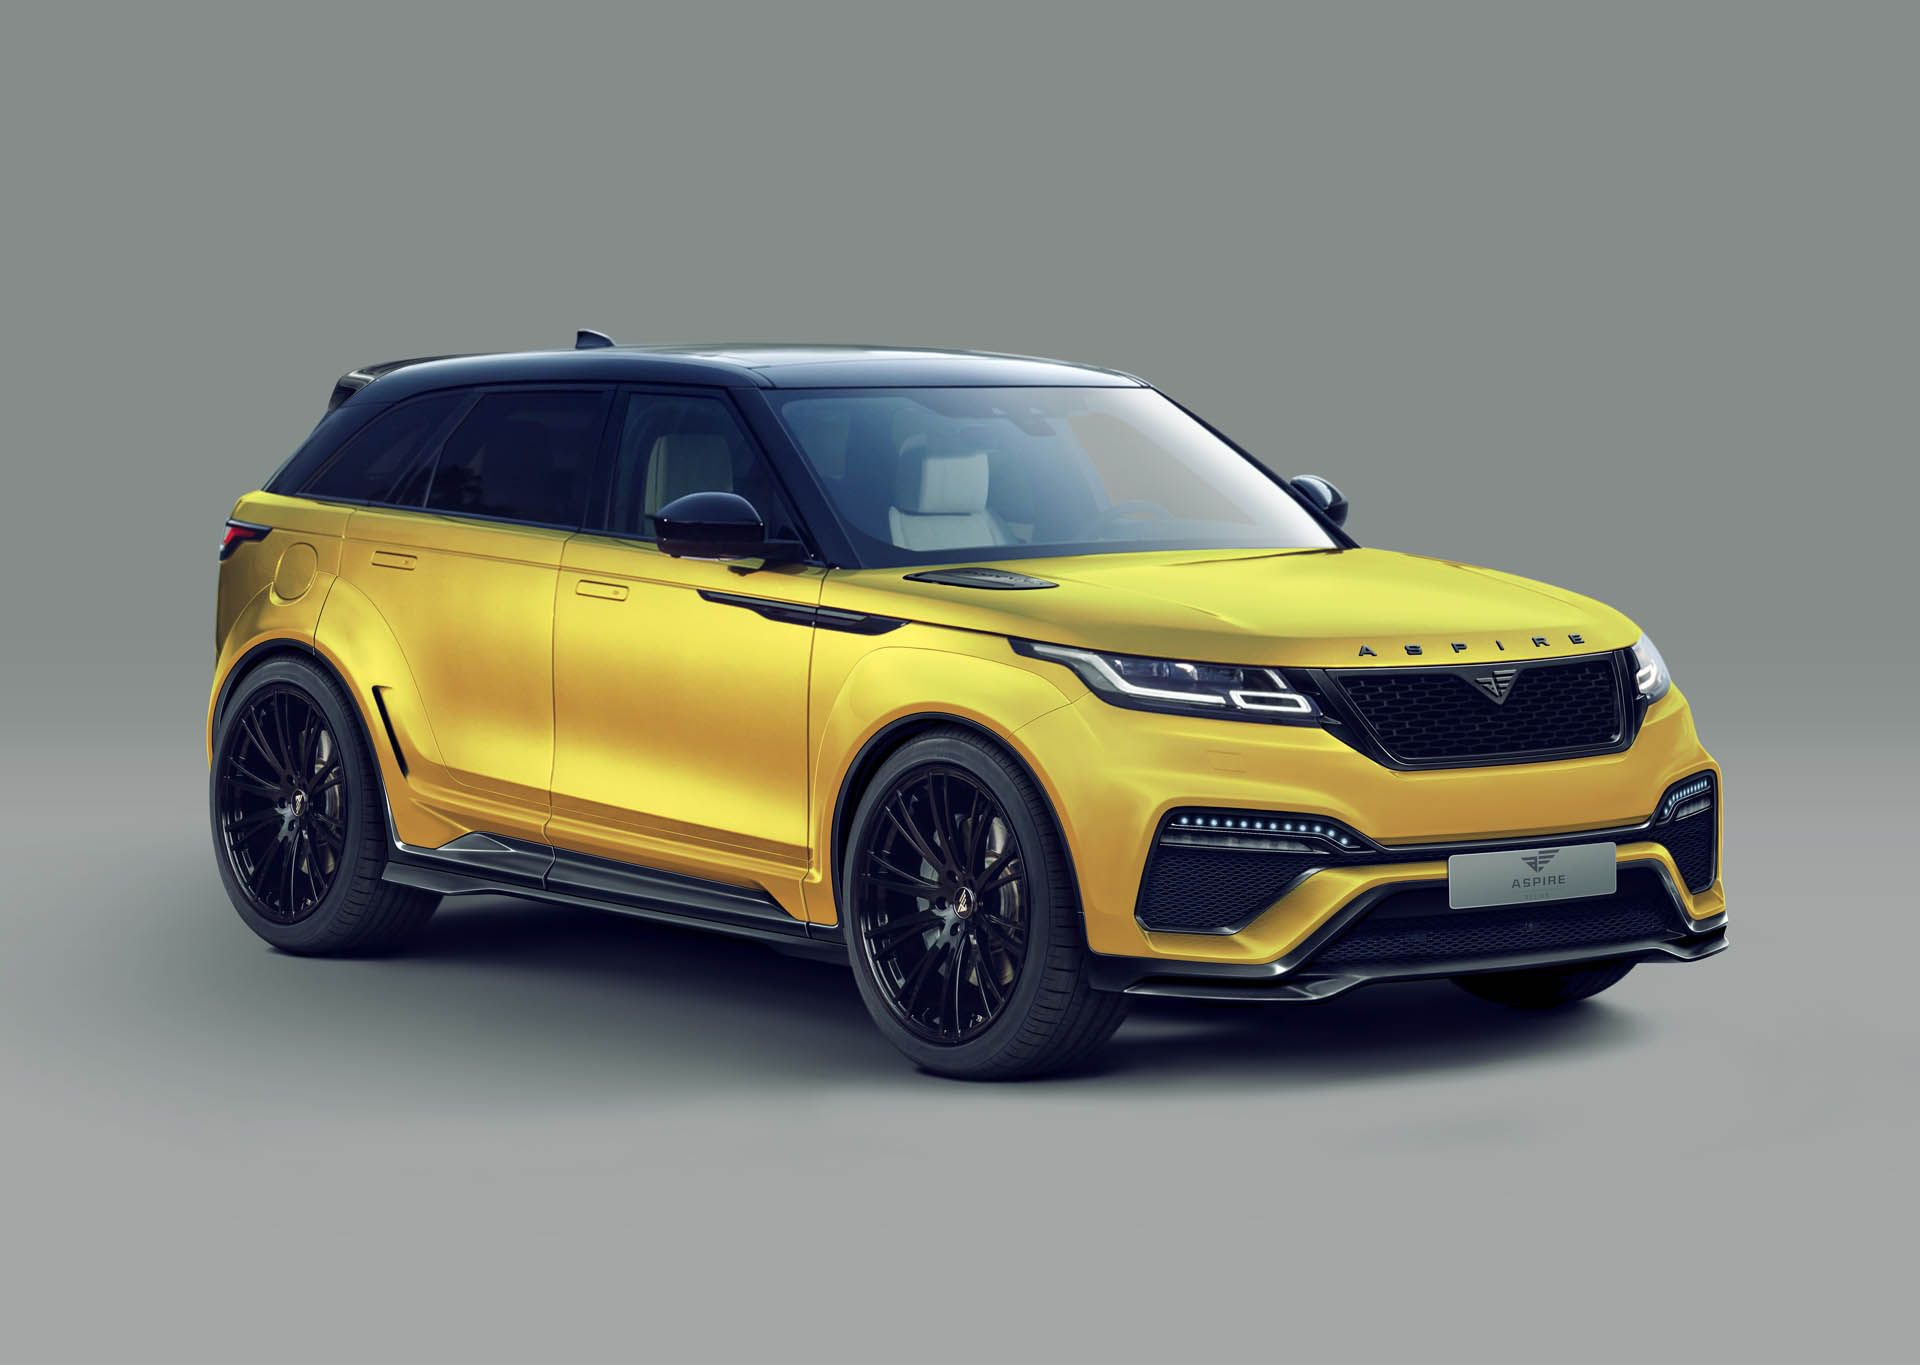 Range Rover Velar by Aspire Design (3)